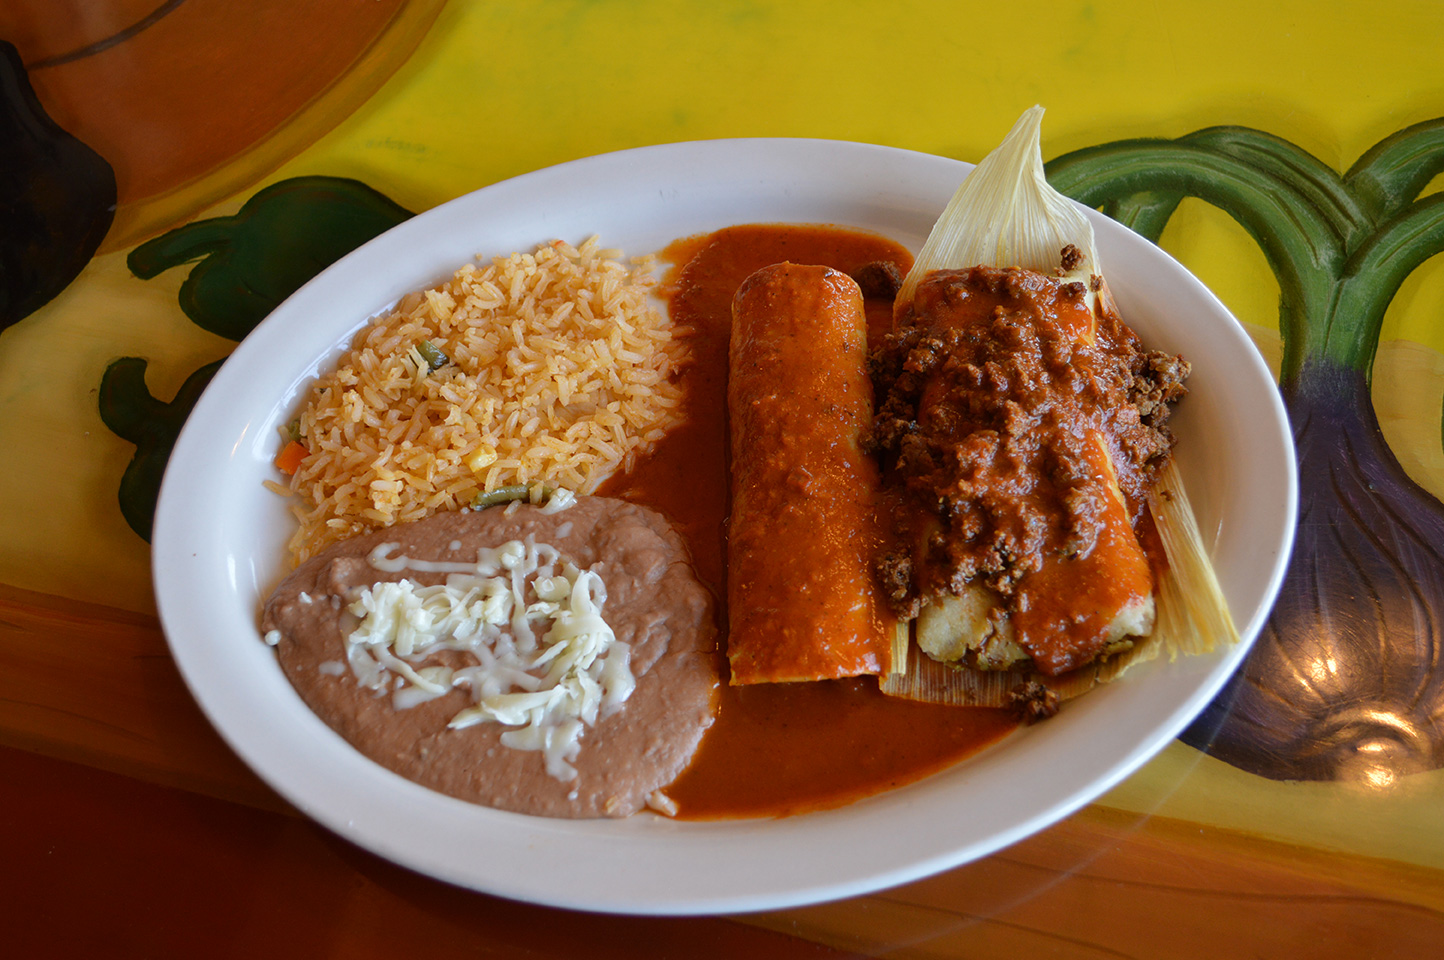 Enchilada and Tamale